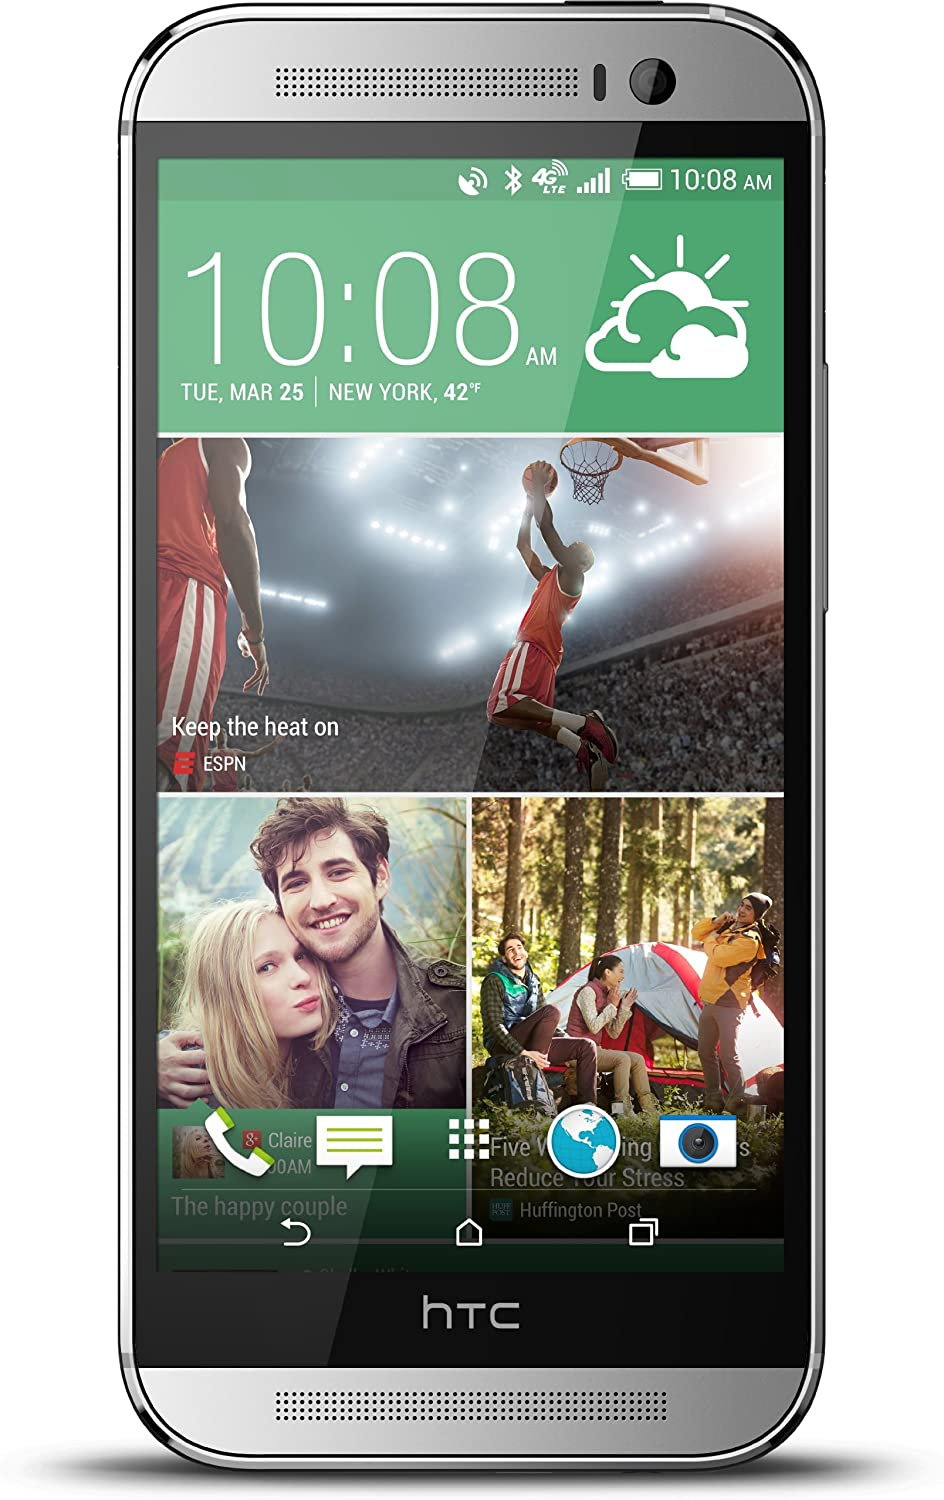 HTC One New color M8 32GB Unlocked Smartphone Glacial Sil U.S. Max 83% OFF - Version